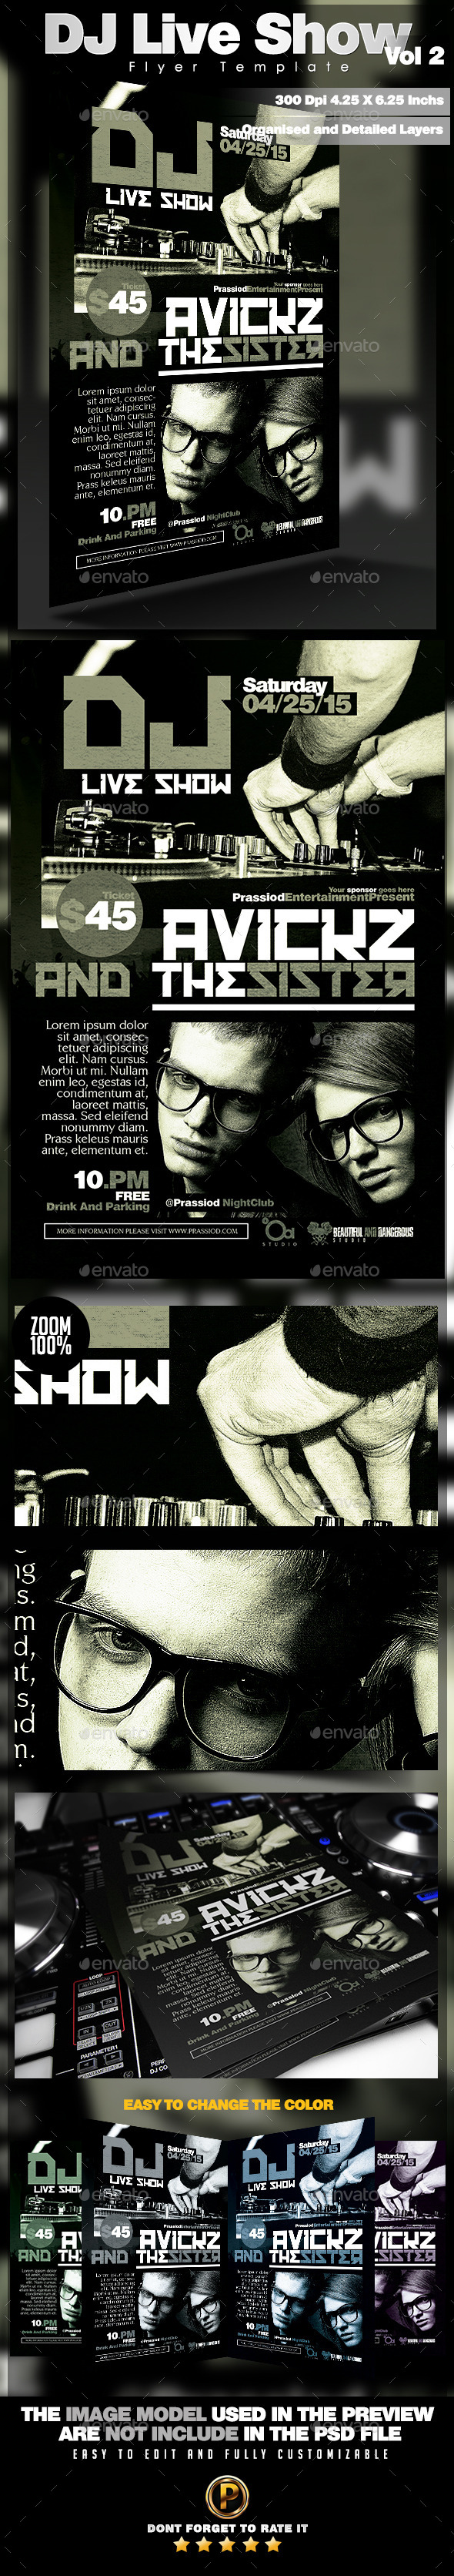 DJ Live Show Flyer Template Vol 2 - Clubs & Parties Events